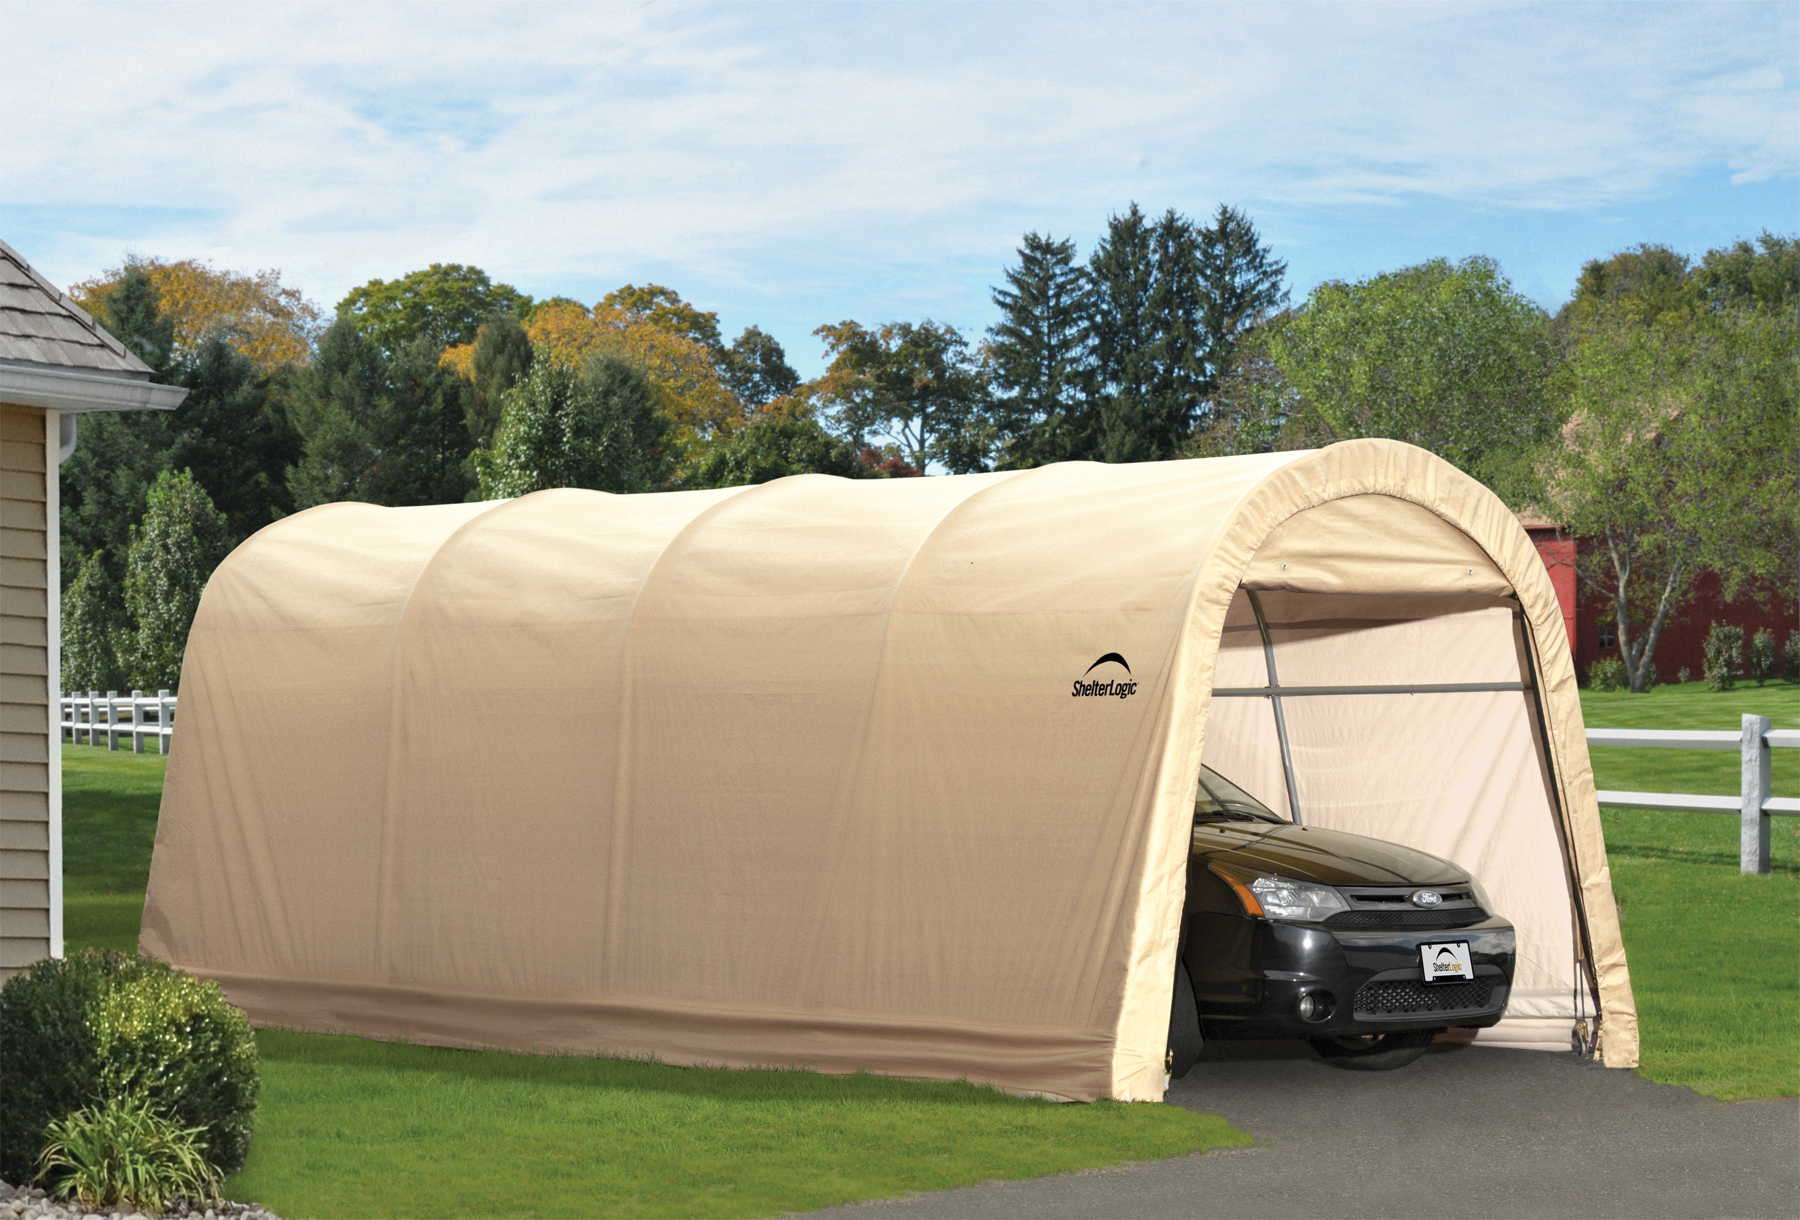 Portable Carports At Costco : Carport kits portable car garage shelters